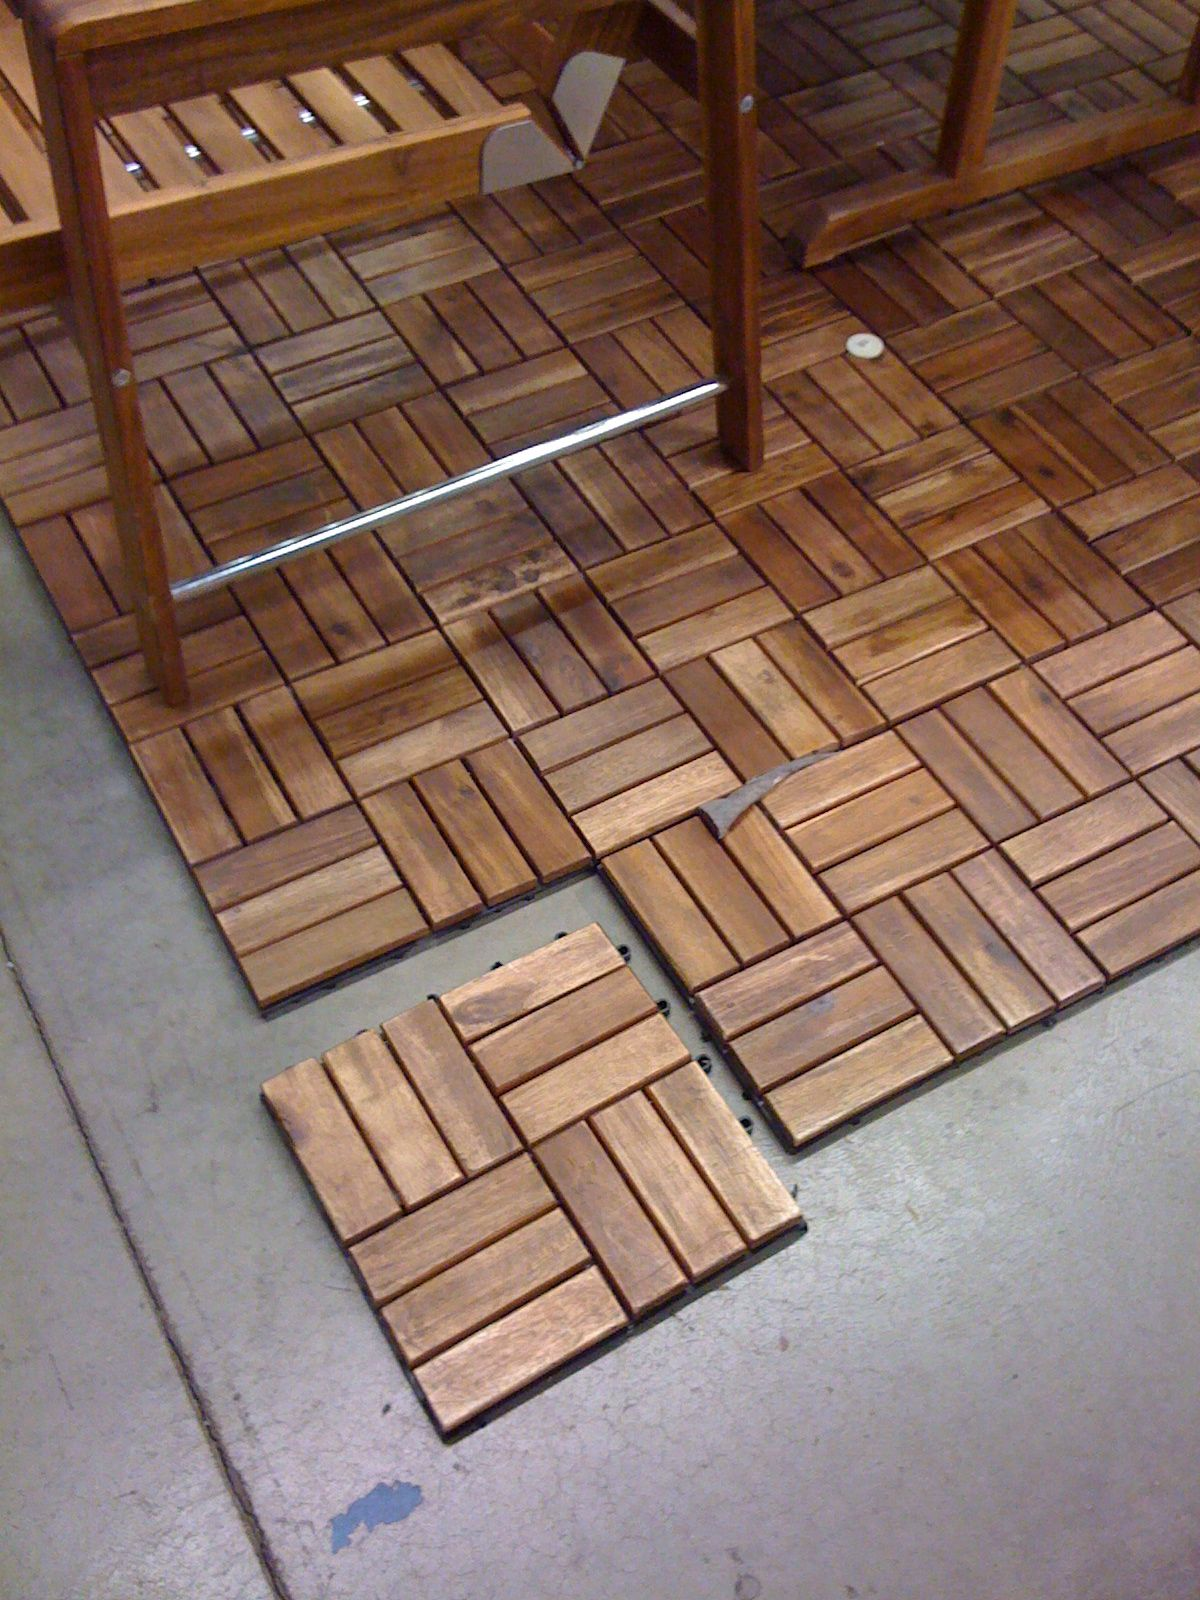 Interlocking Wood Tiles For Patio Mycoffeepot Org